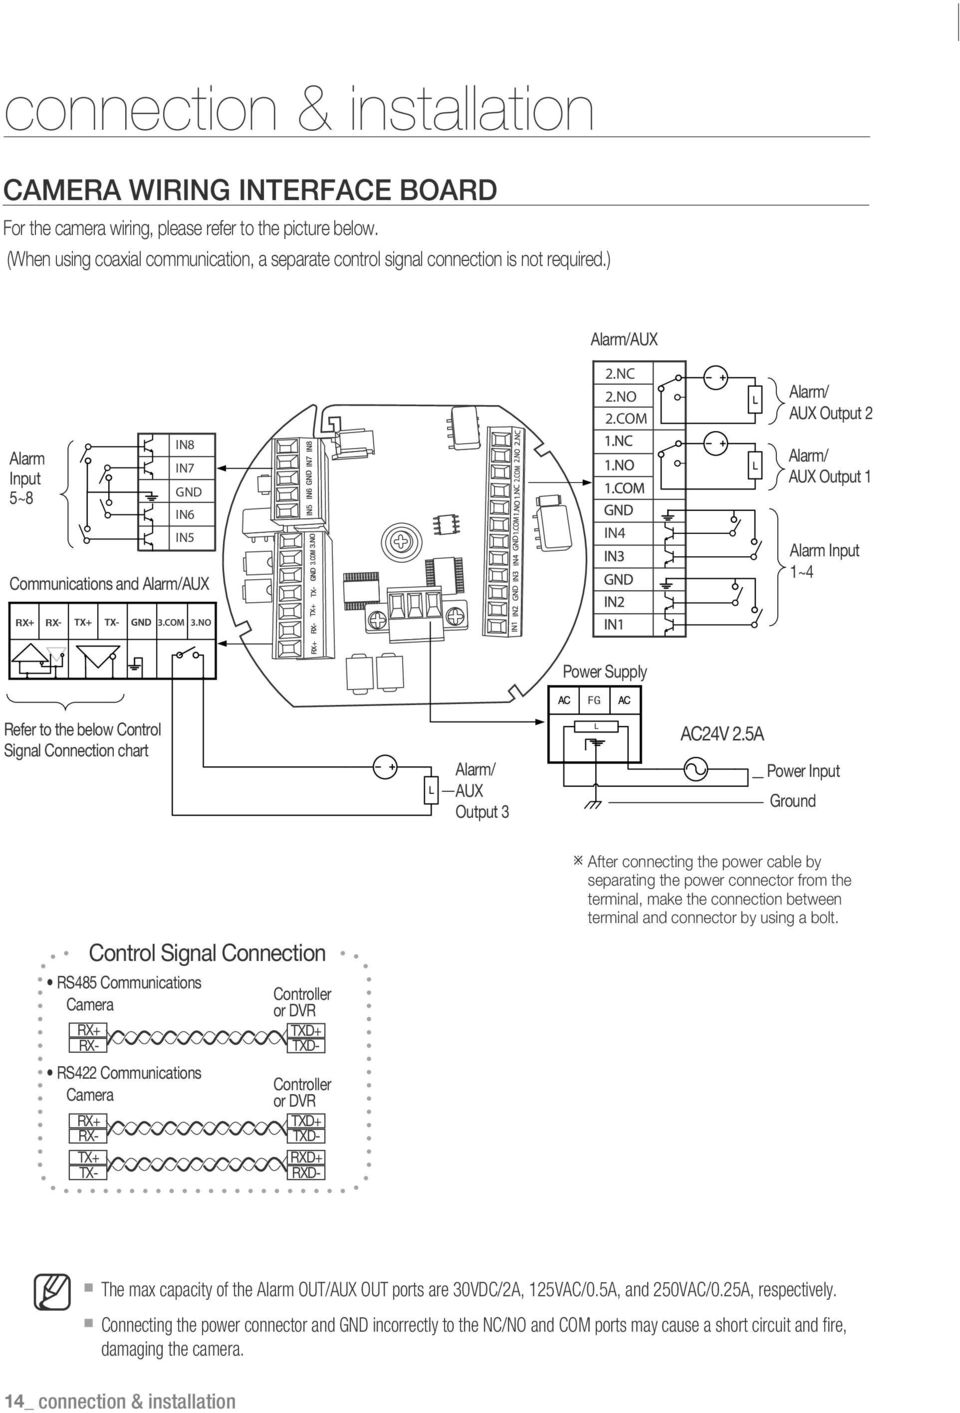 COM IN4 Alarm/ AUX Output 2 Alarm/ AUX Output 1 Alarm Input 1~4 RX RX 3.COM 3.NO Power Supply FG Refer to the below Control Signal Connection chart Alarm/ AUX Output 3 AC24V 2.